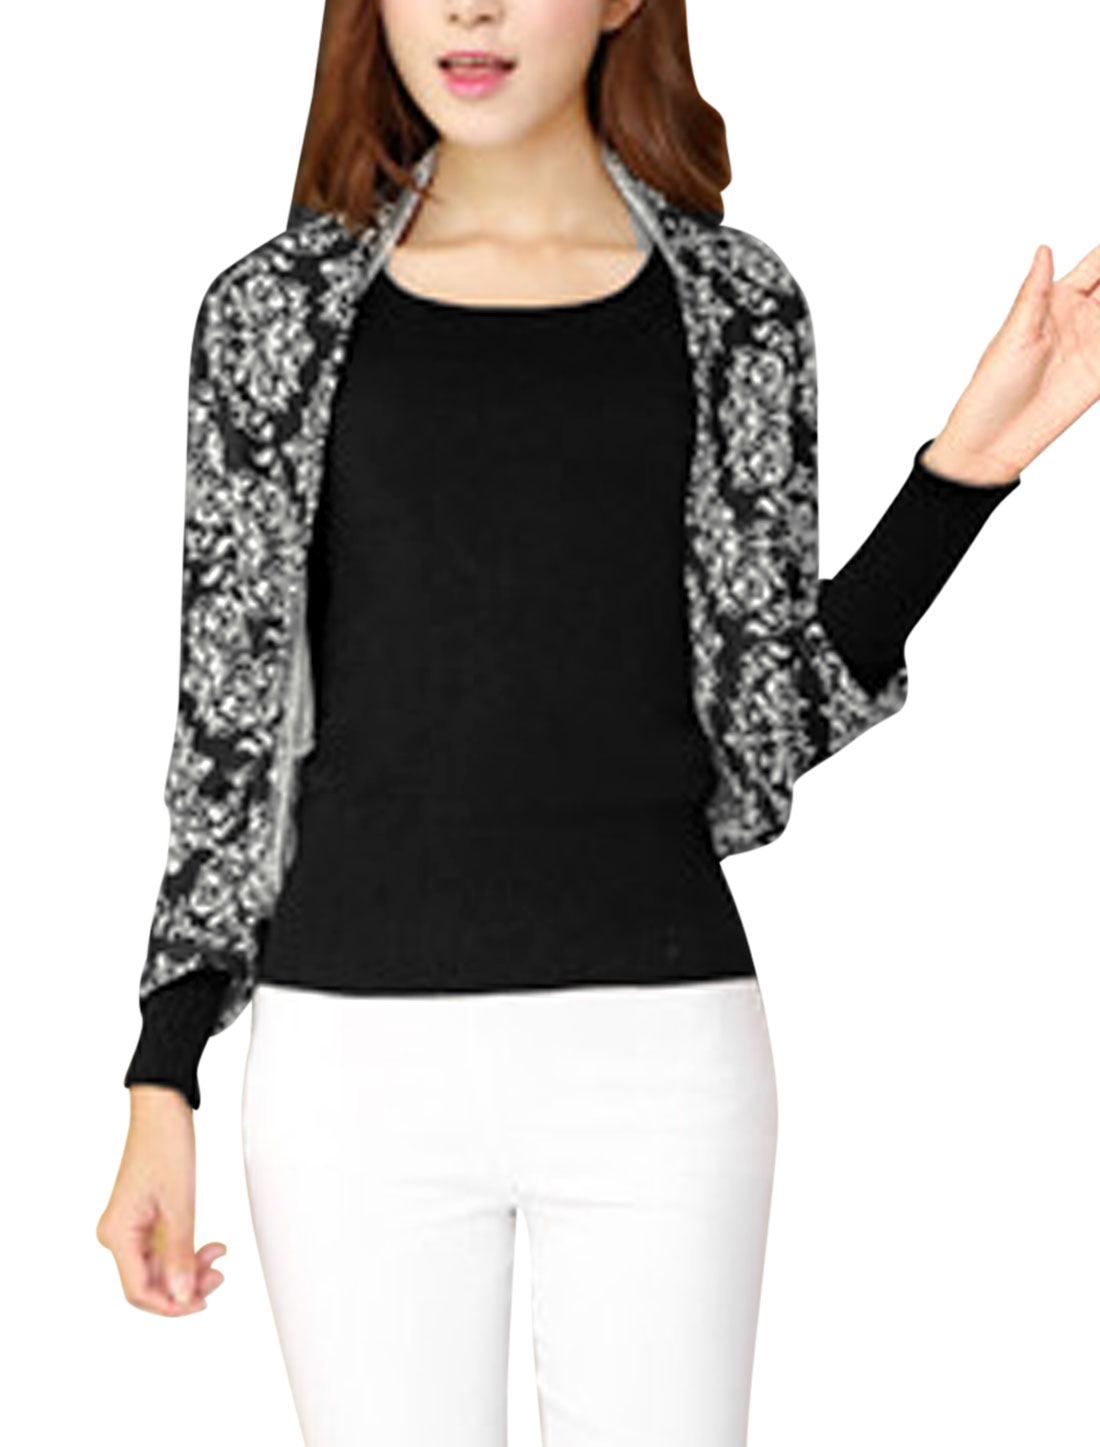 Ladies Black White Jacquard Pattern Batwing Sleeves Knit Shrug Bolero XS